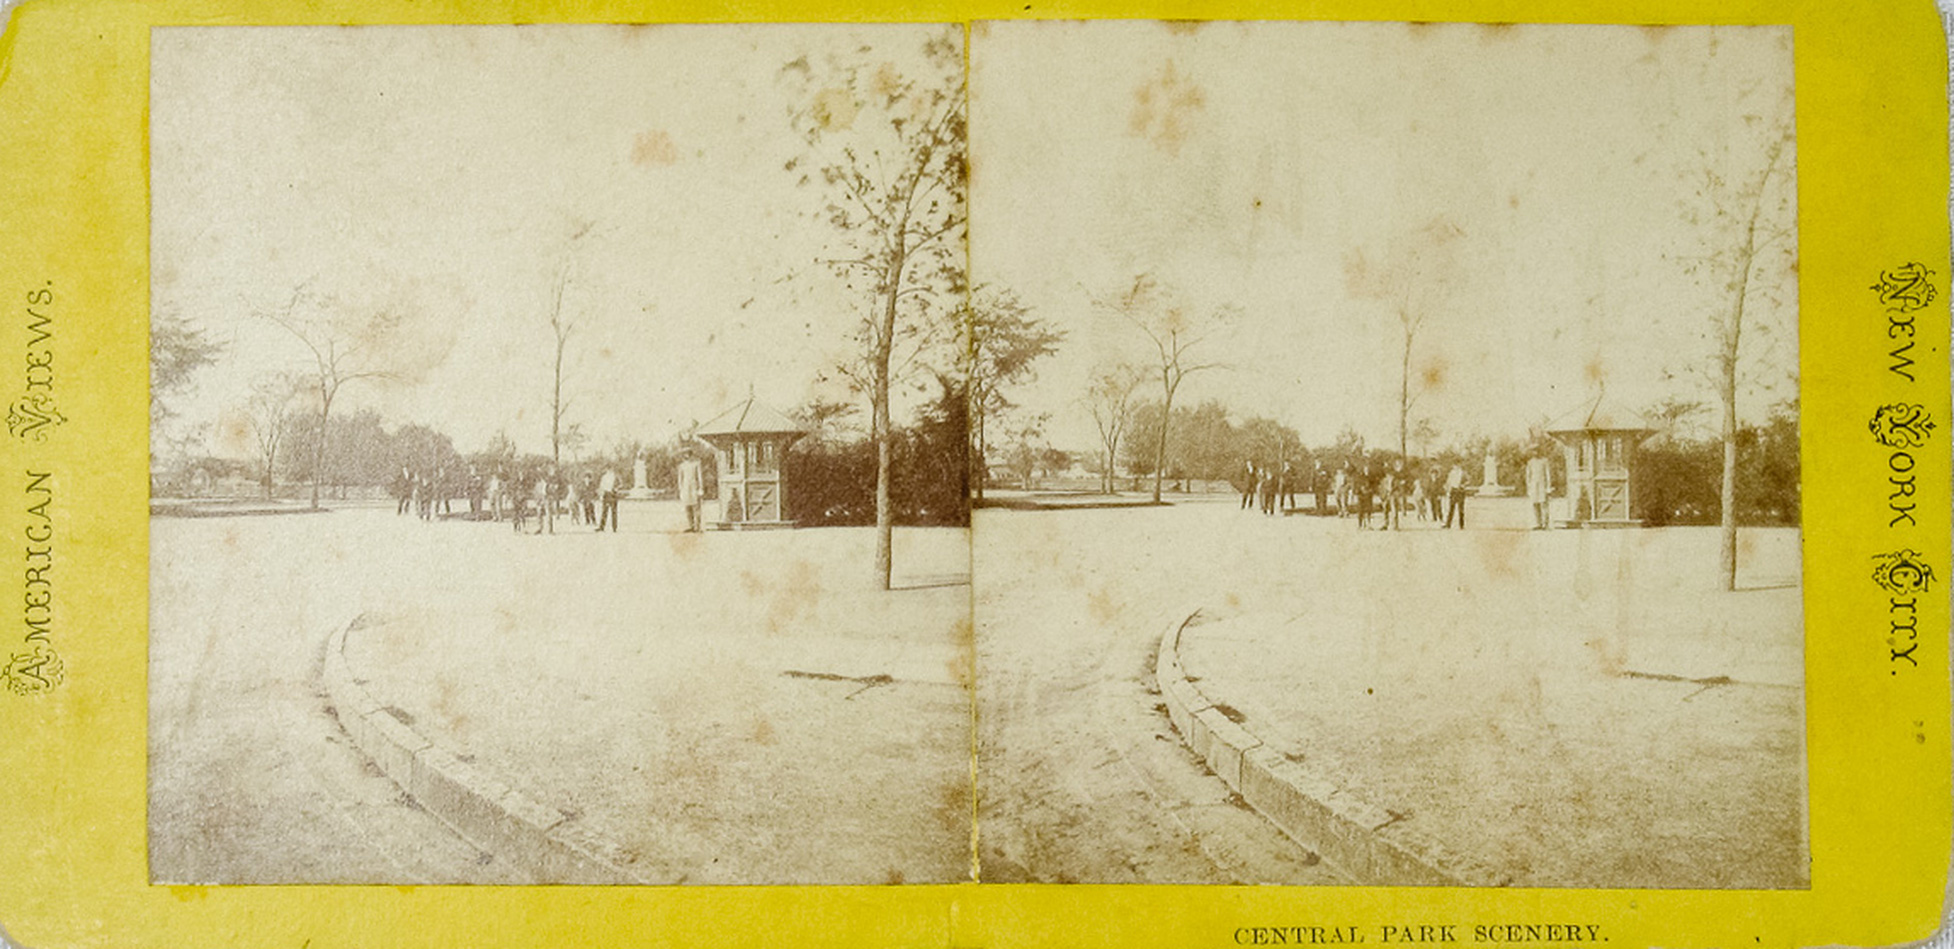 1-Central Park's original grand entrance on Fifth Avenue with policeman and guard house